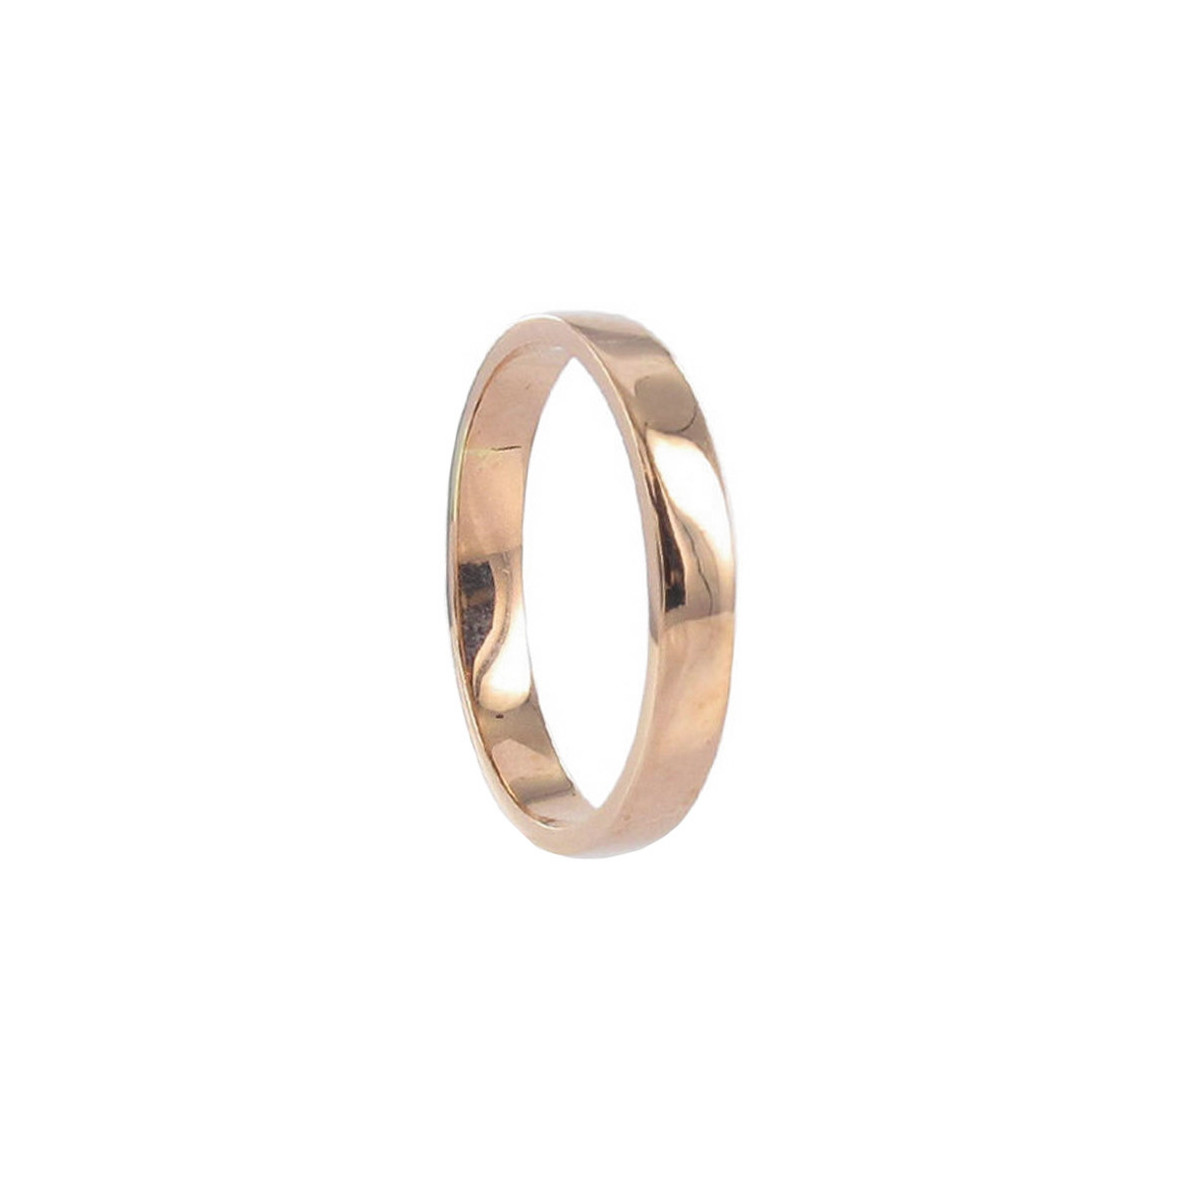 ROSE GOLD ALLIANCE FOR MAN AND WOMAN